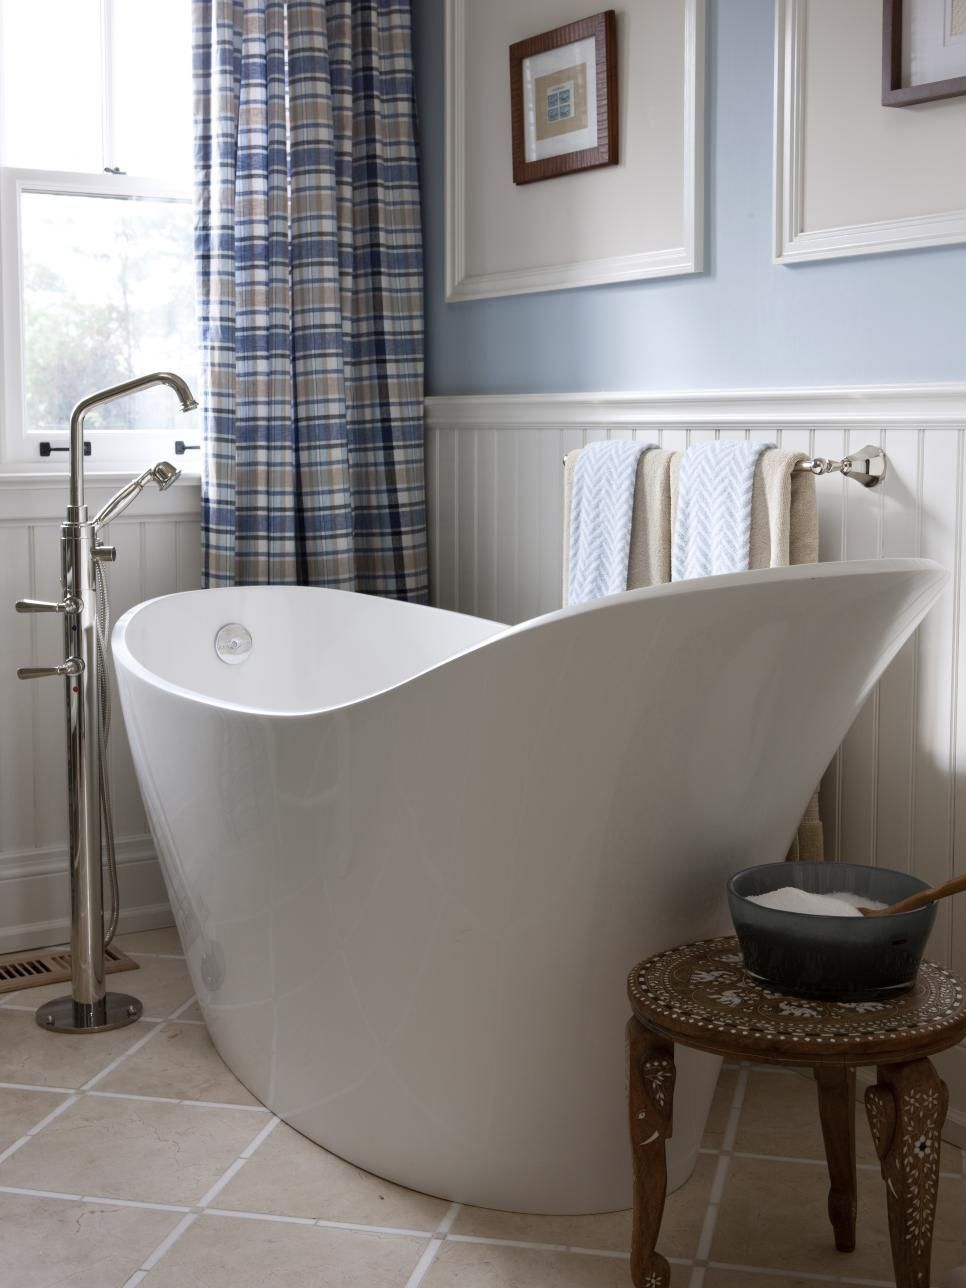 Genial A White Slipper Bathtub Adds A Contemporary Touch To This Modern Bathroom  Space. Light Blue Walls Ware Accented With White Wainscoting, While A Blue  And ...